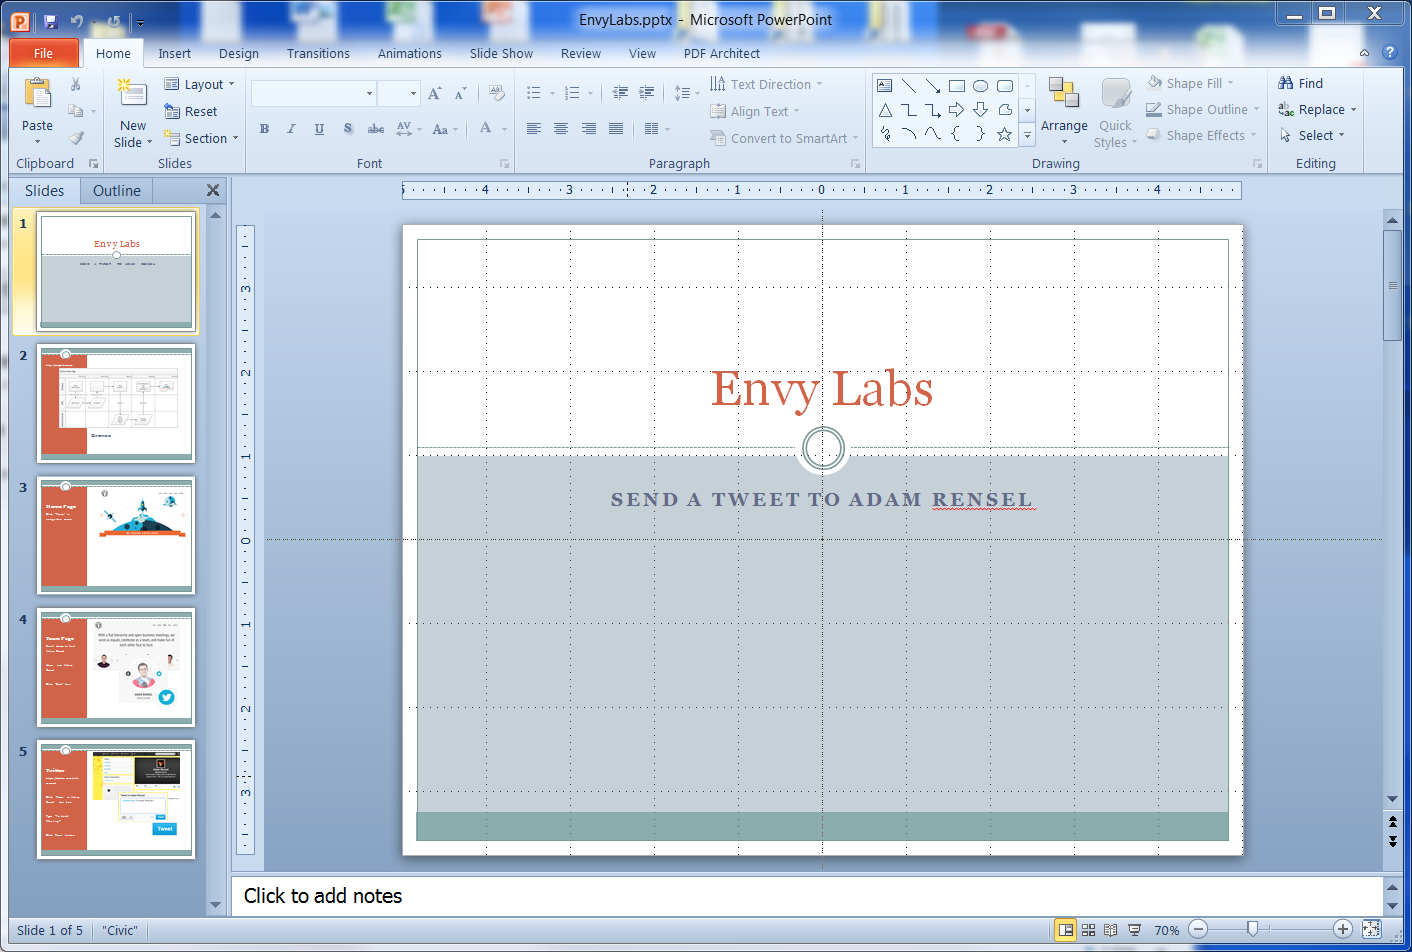 Sketching Envy Labs (http://envylabs.com/) - image 1 - student project